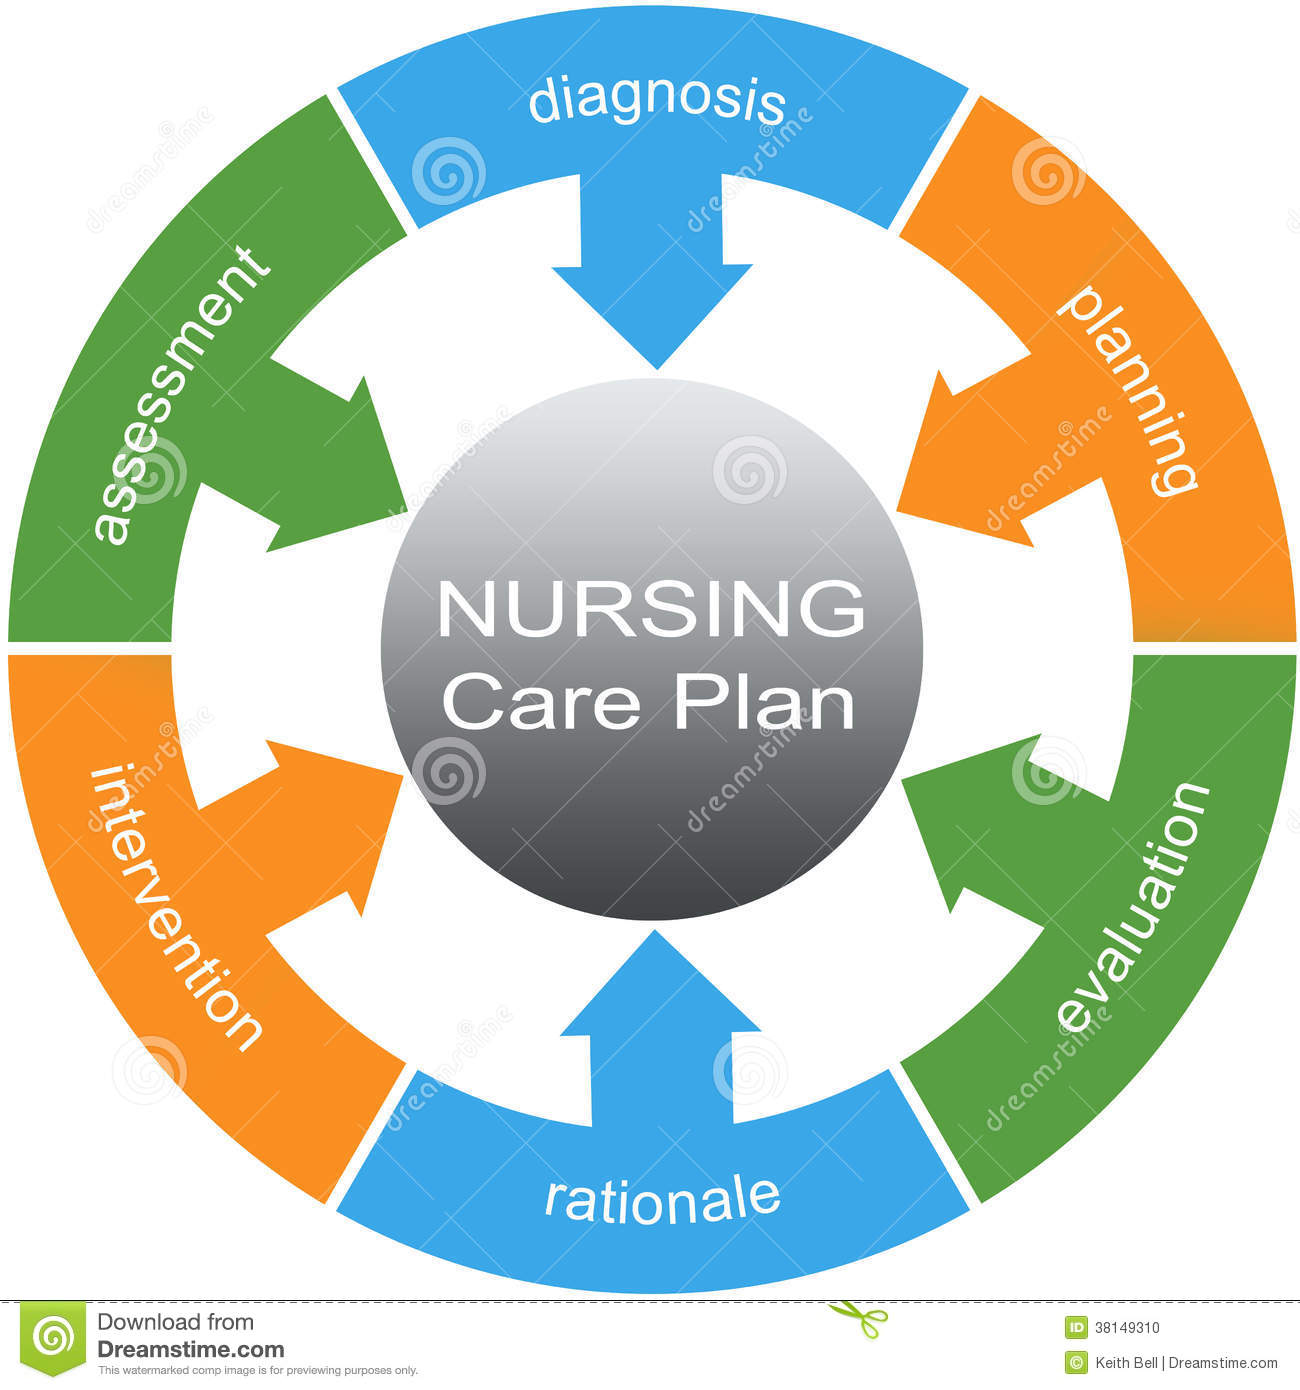 Nursing Care Plan Word Circle Concept Stock Illustration